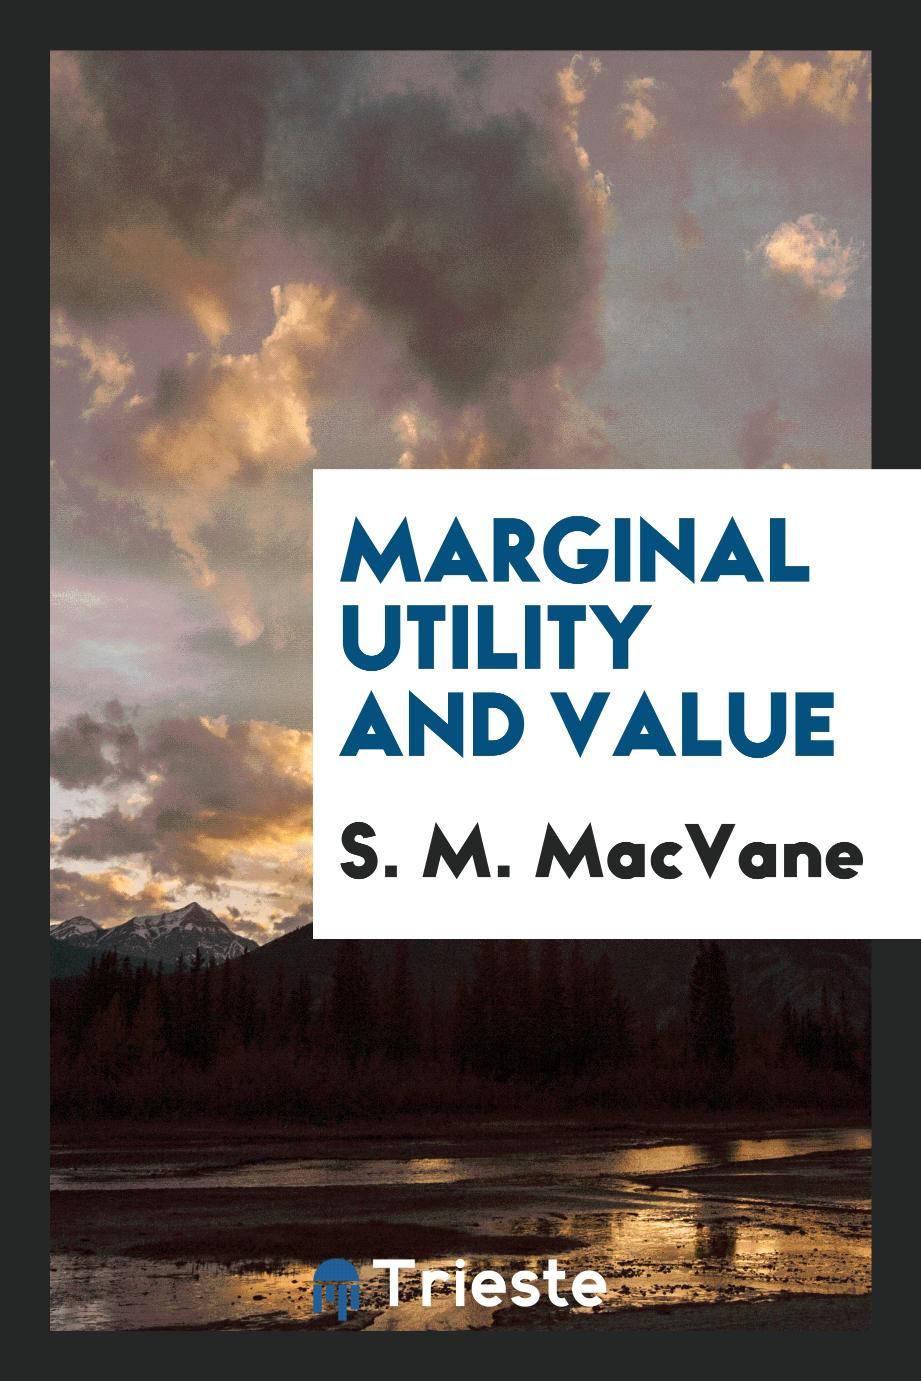 Marginal utility and value